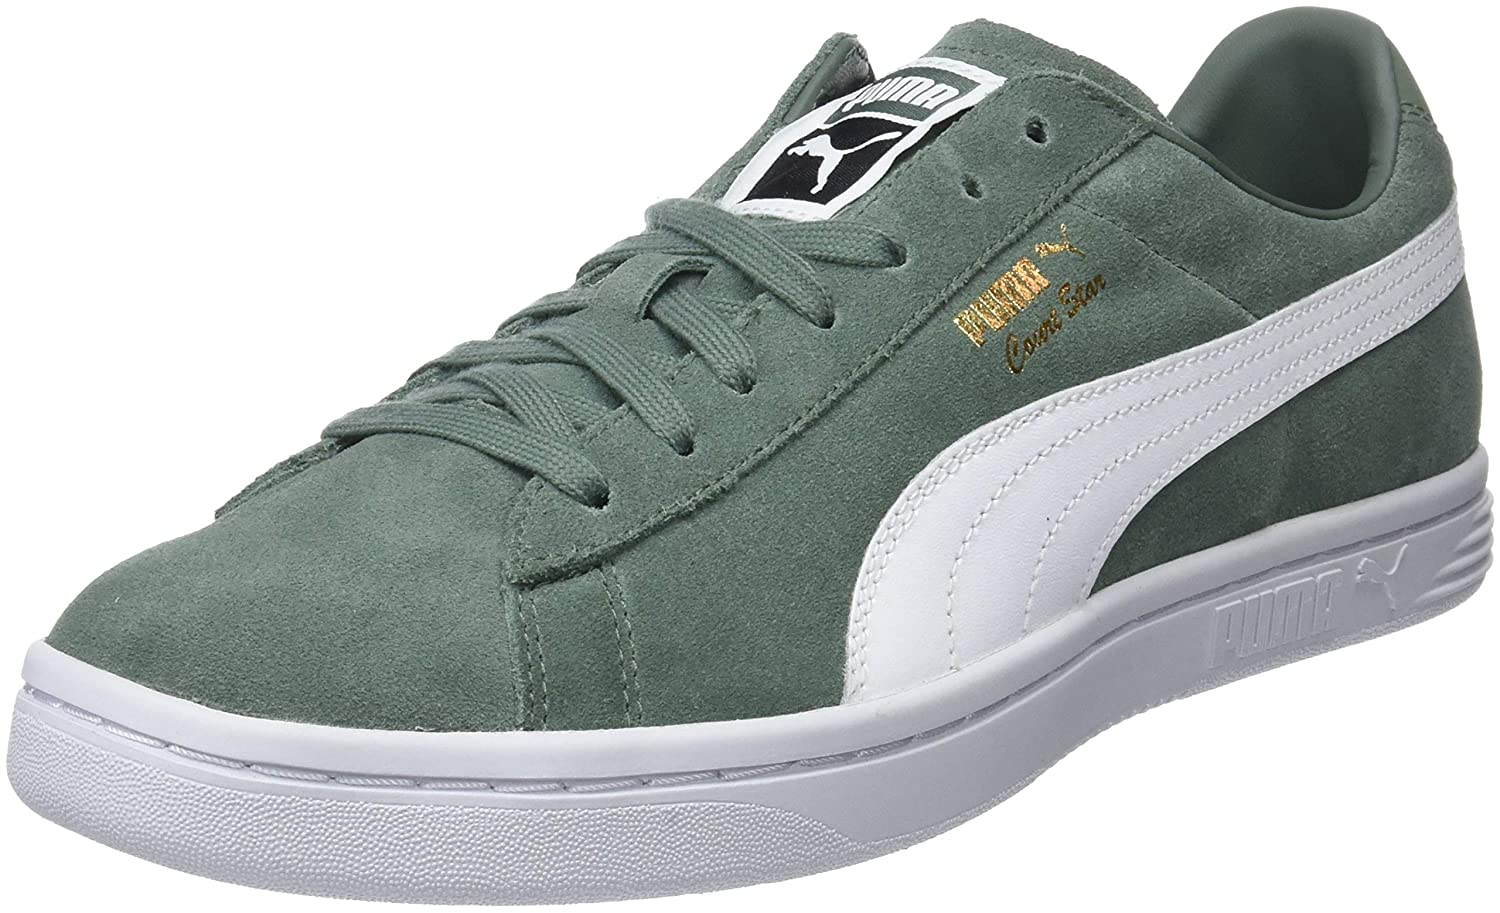 TALLA 39 EU. Puma Court Star FS, Zapatillas Unisex Adulto